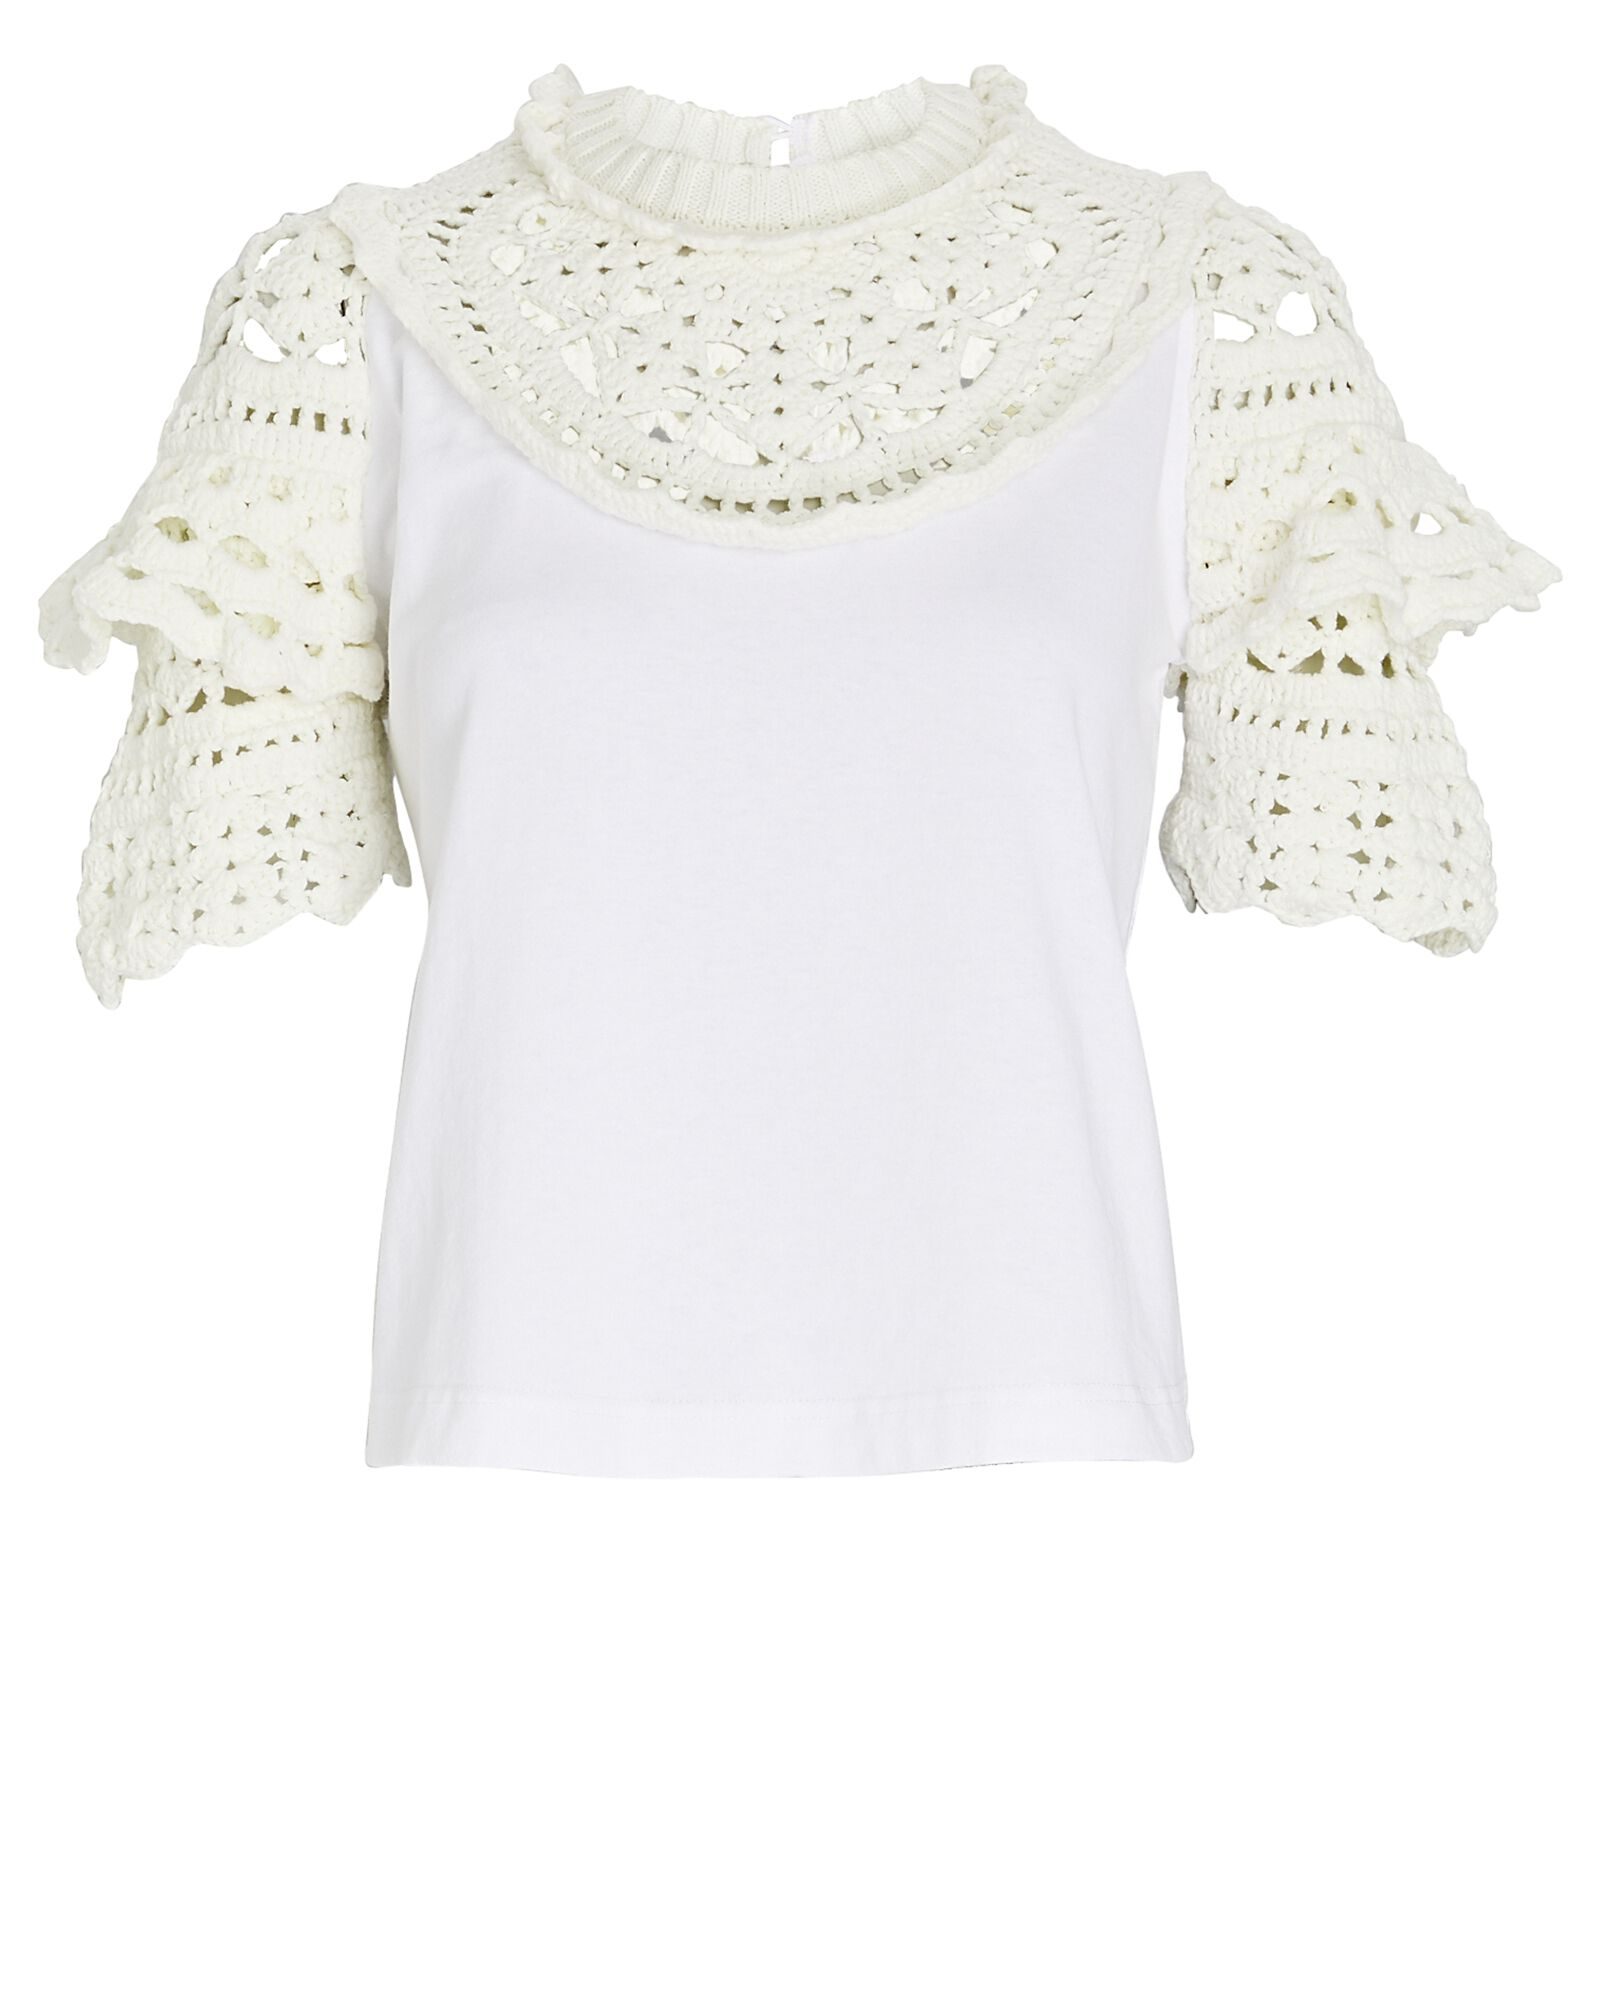 Cleo Crochet-Trimmed Top, WHITE, hi-res